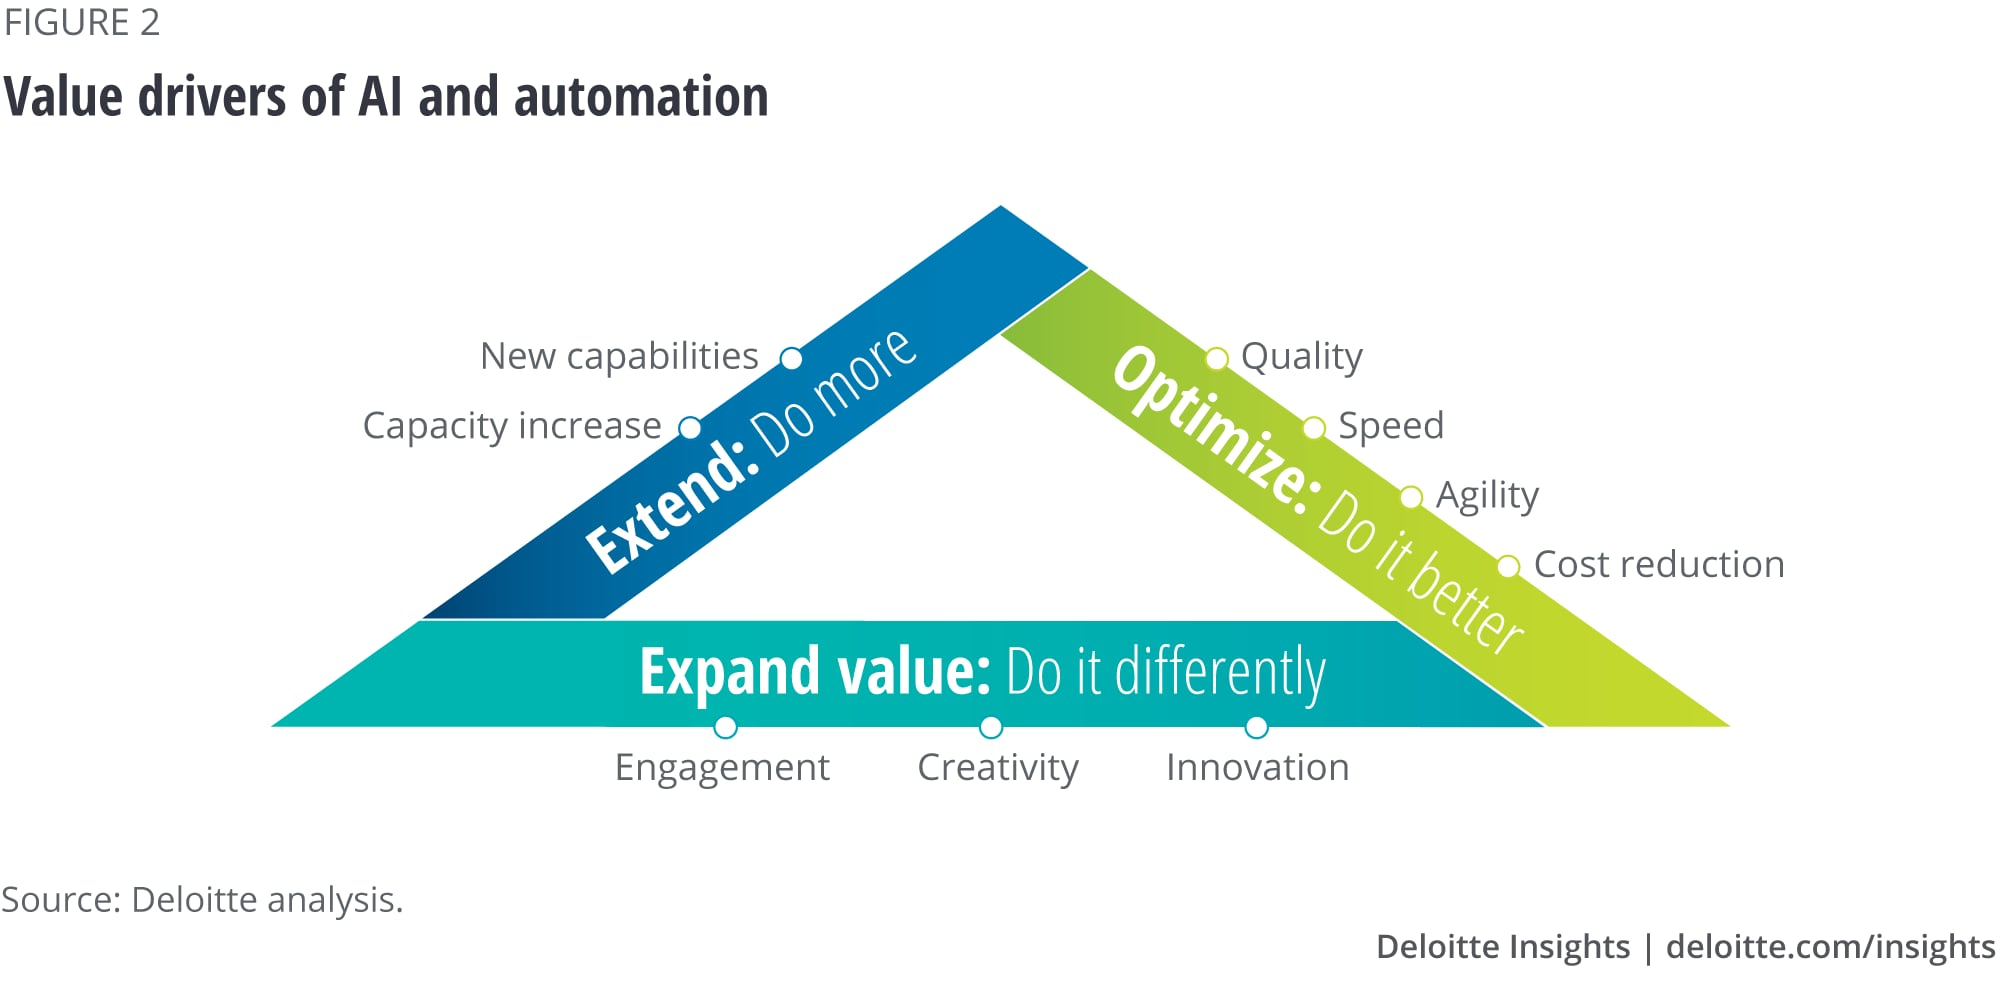 Value drivers of AI and automation